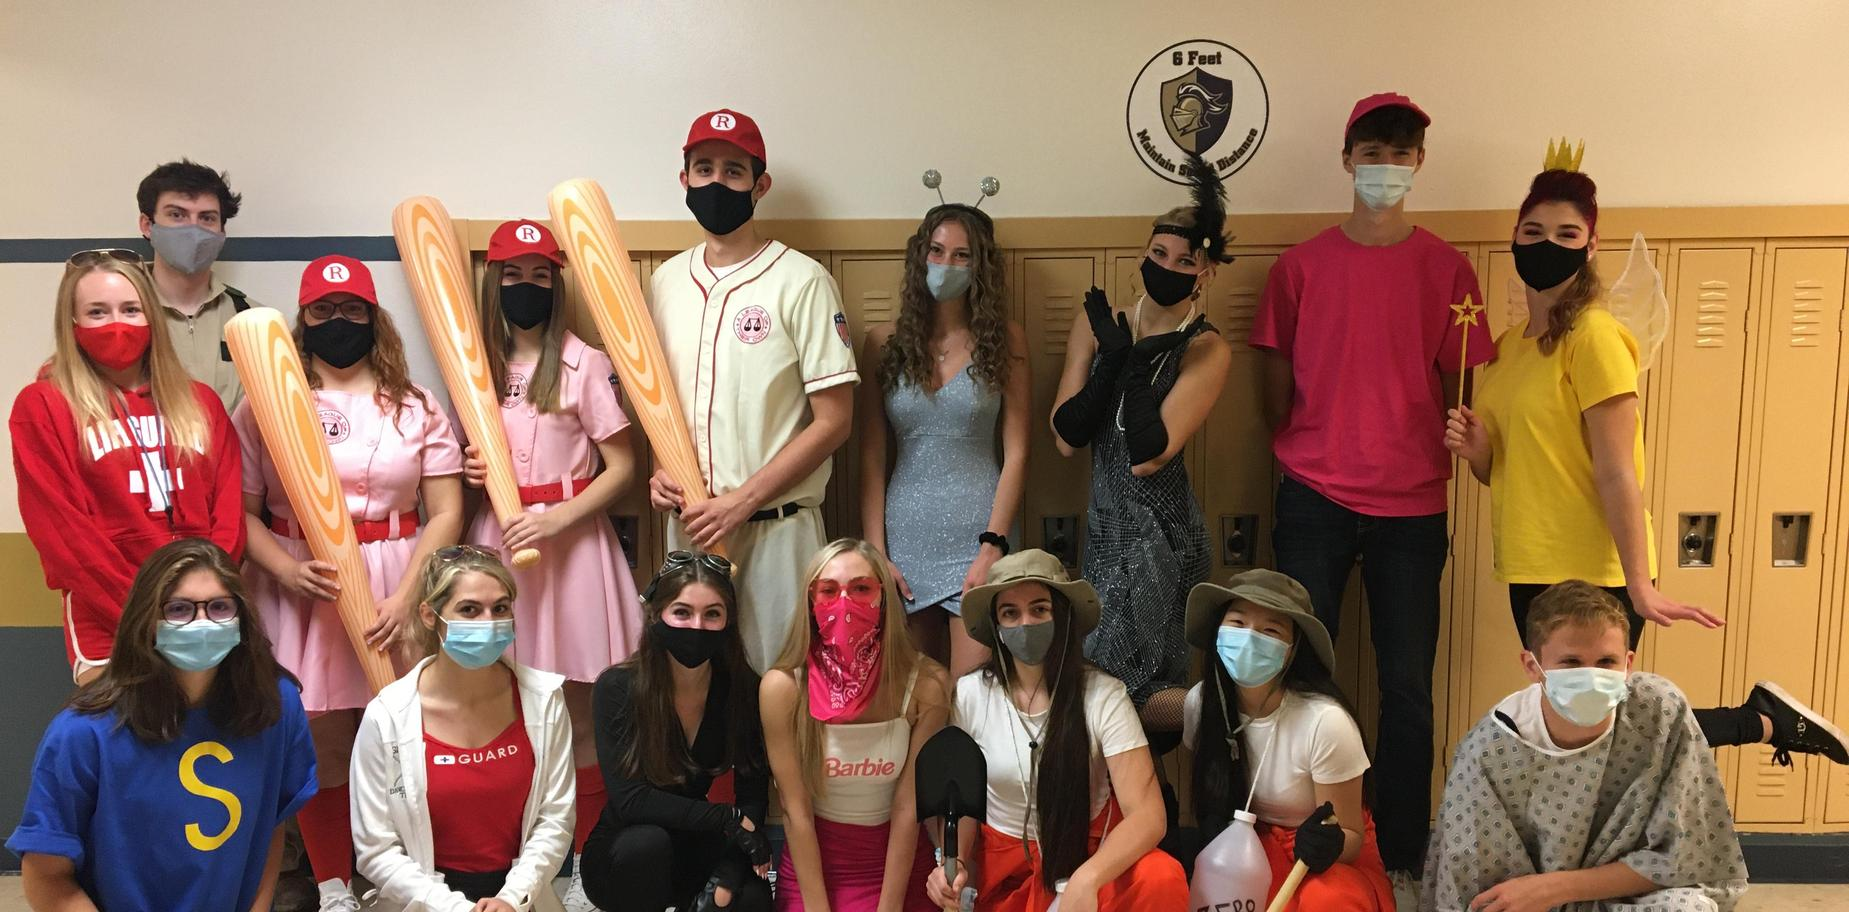 group of students in costume